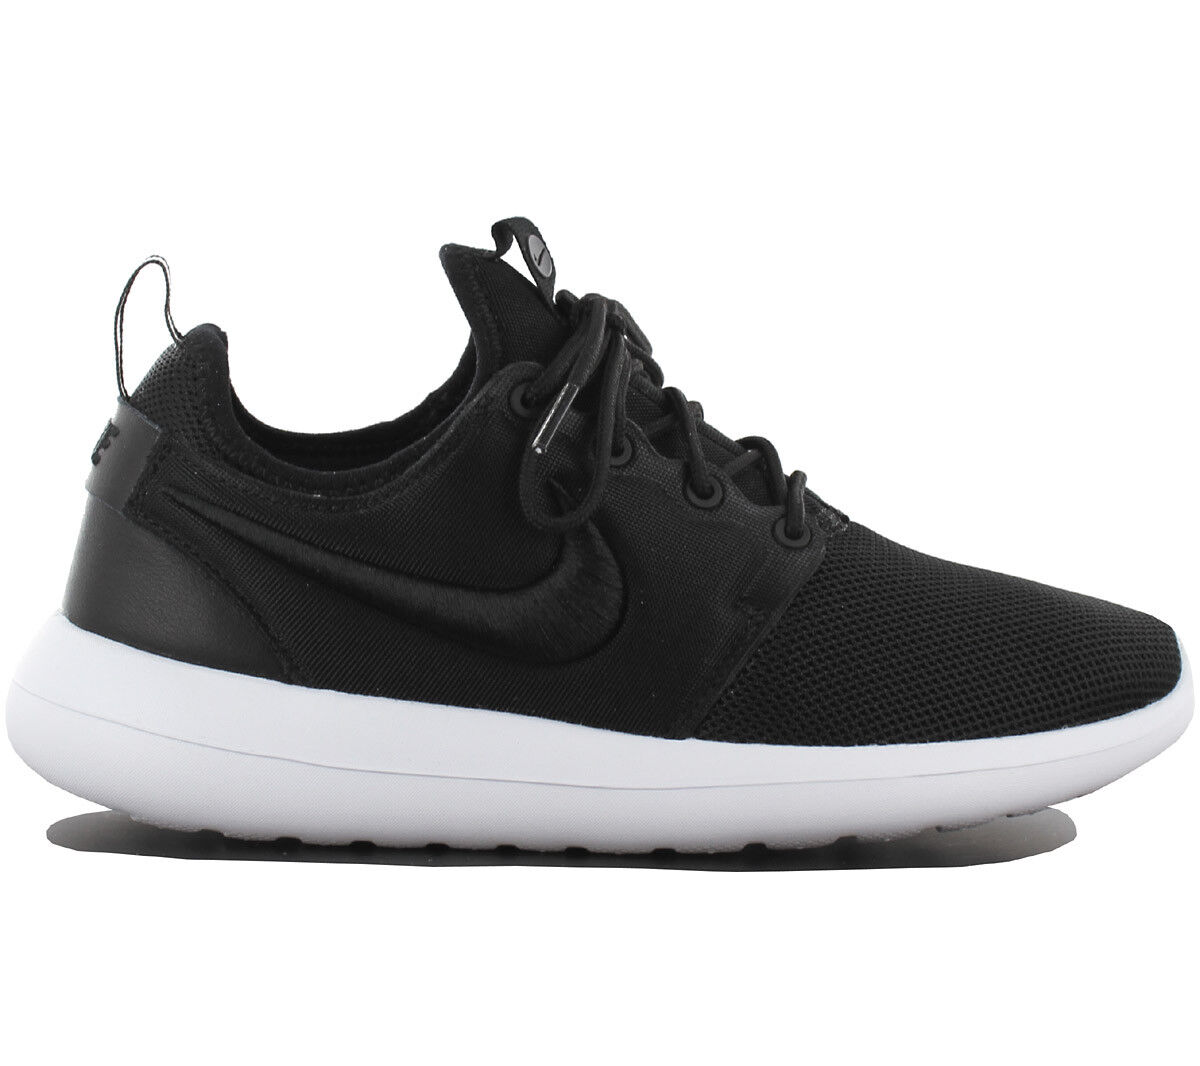 Nike Wmns Roshe Two Nero Br Breathe Scarpe Sneaker Nero Two One Run 896445-001 7052b0